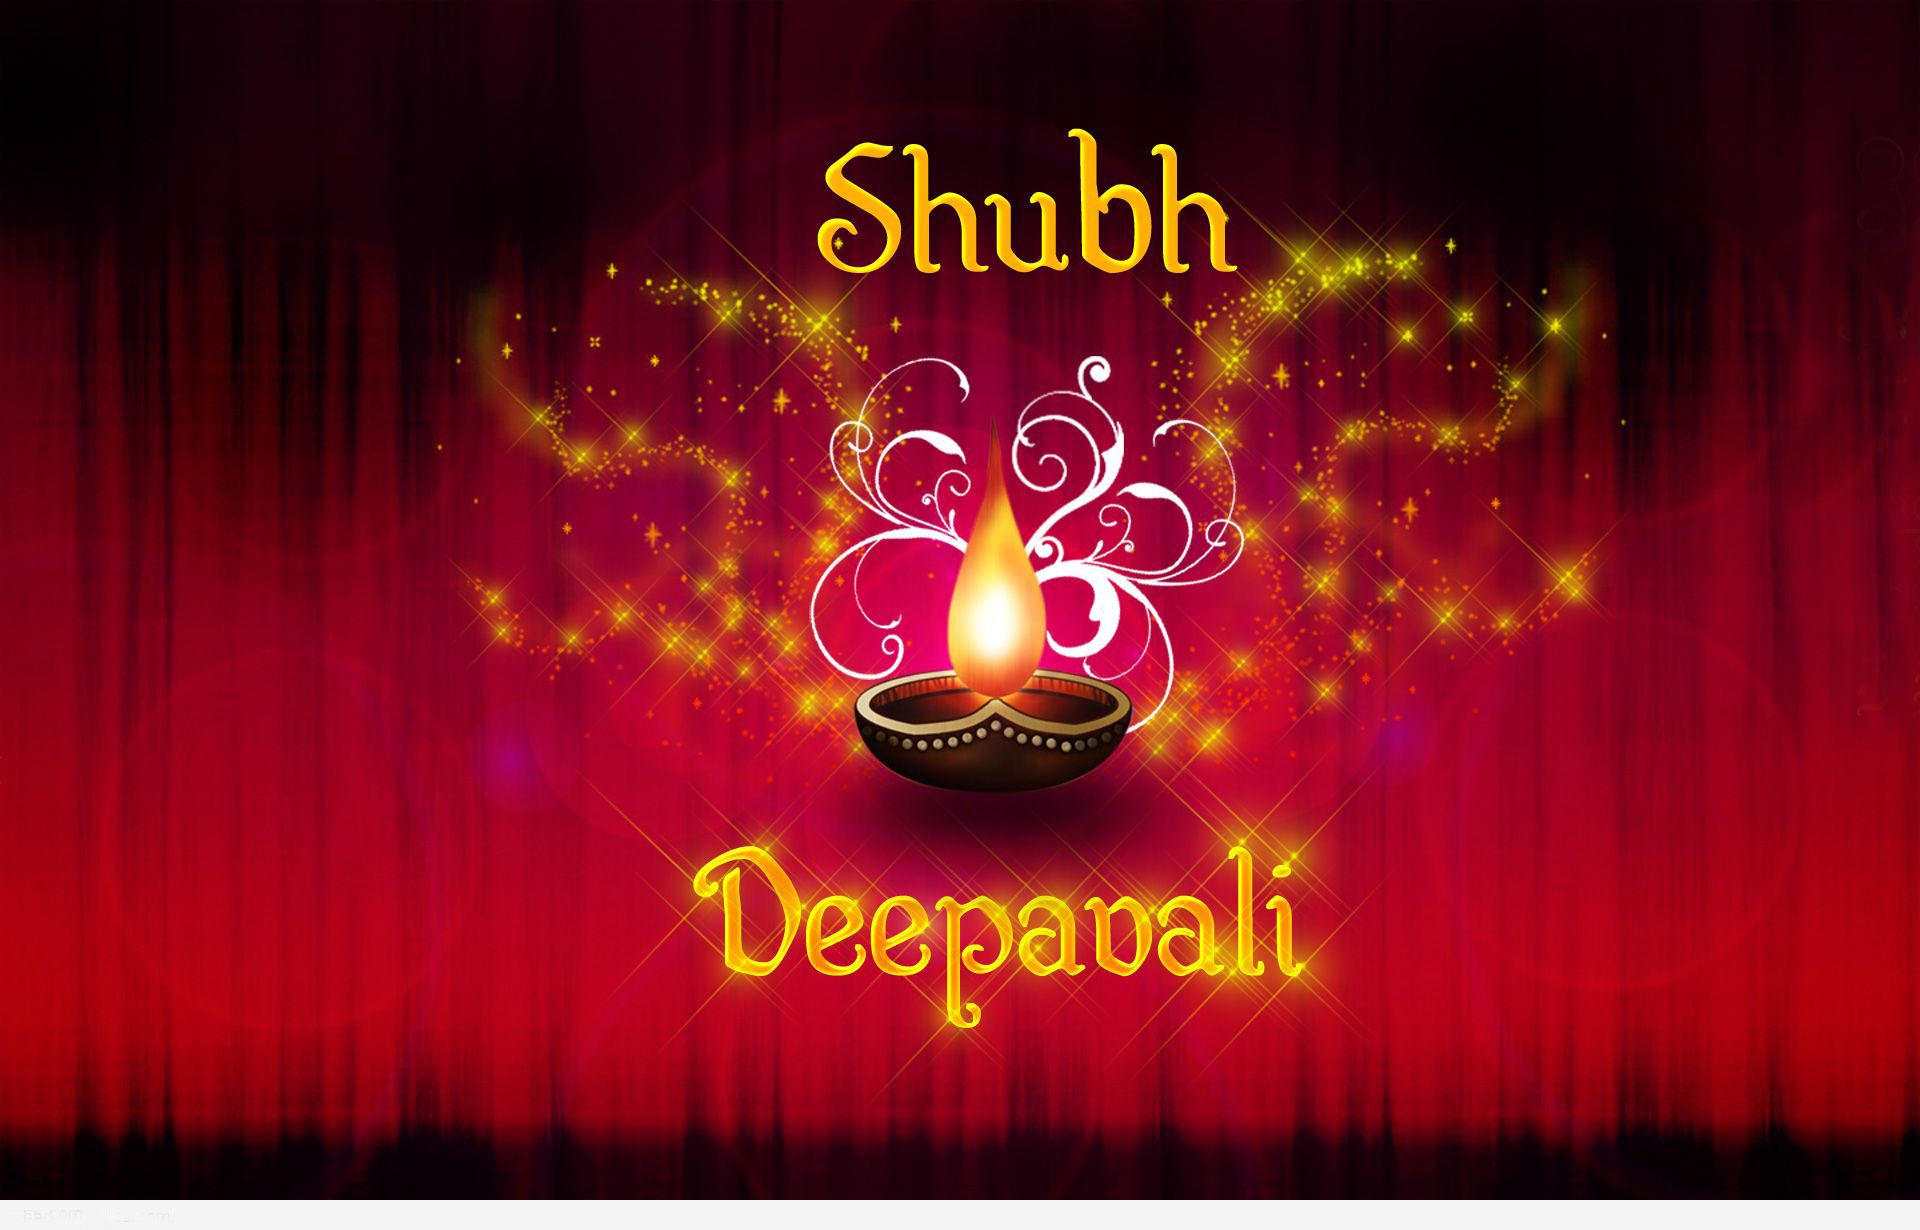 Happy Diwali Download Latest Images And Greeting Cards 2015 Http